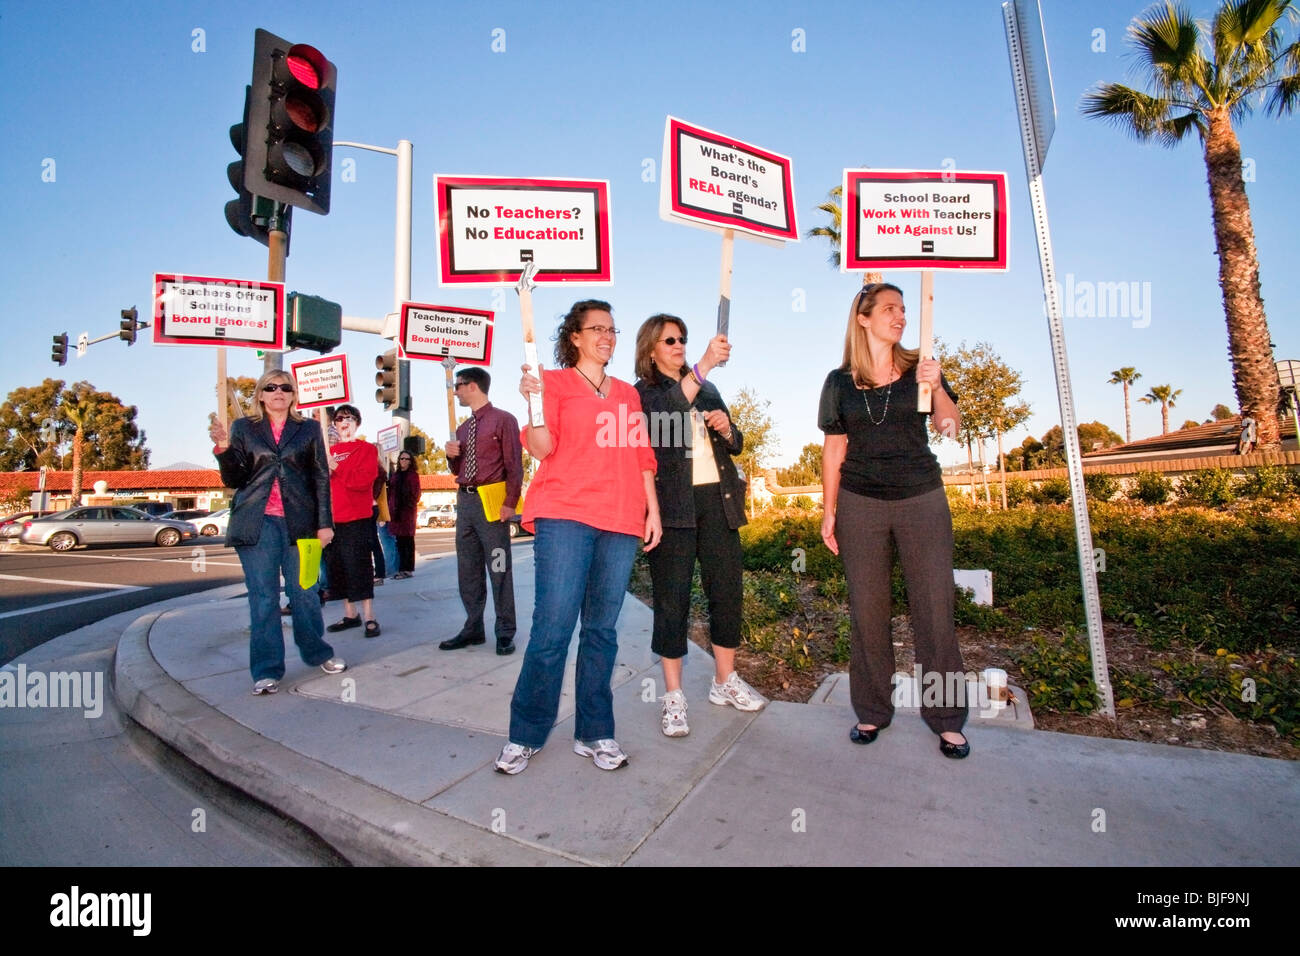 Teachers stage a street corner picket against a threatened pay cut by the city school board Mission Viejo, California. Stock Photo